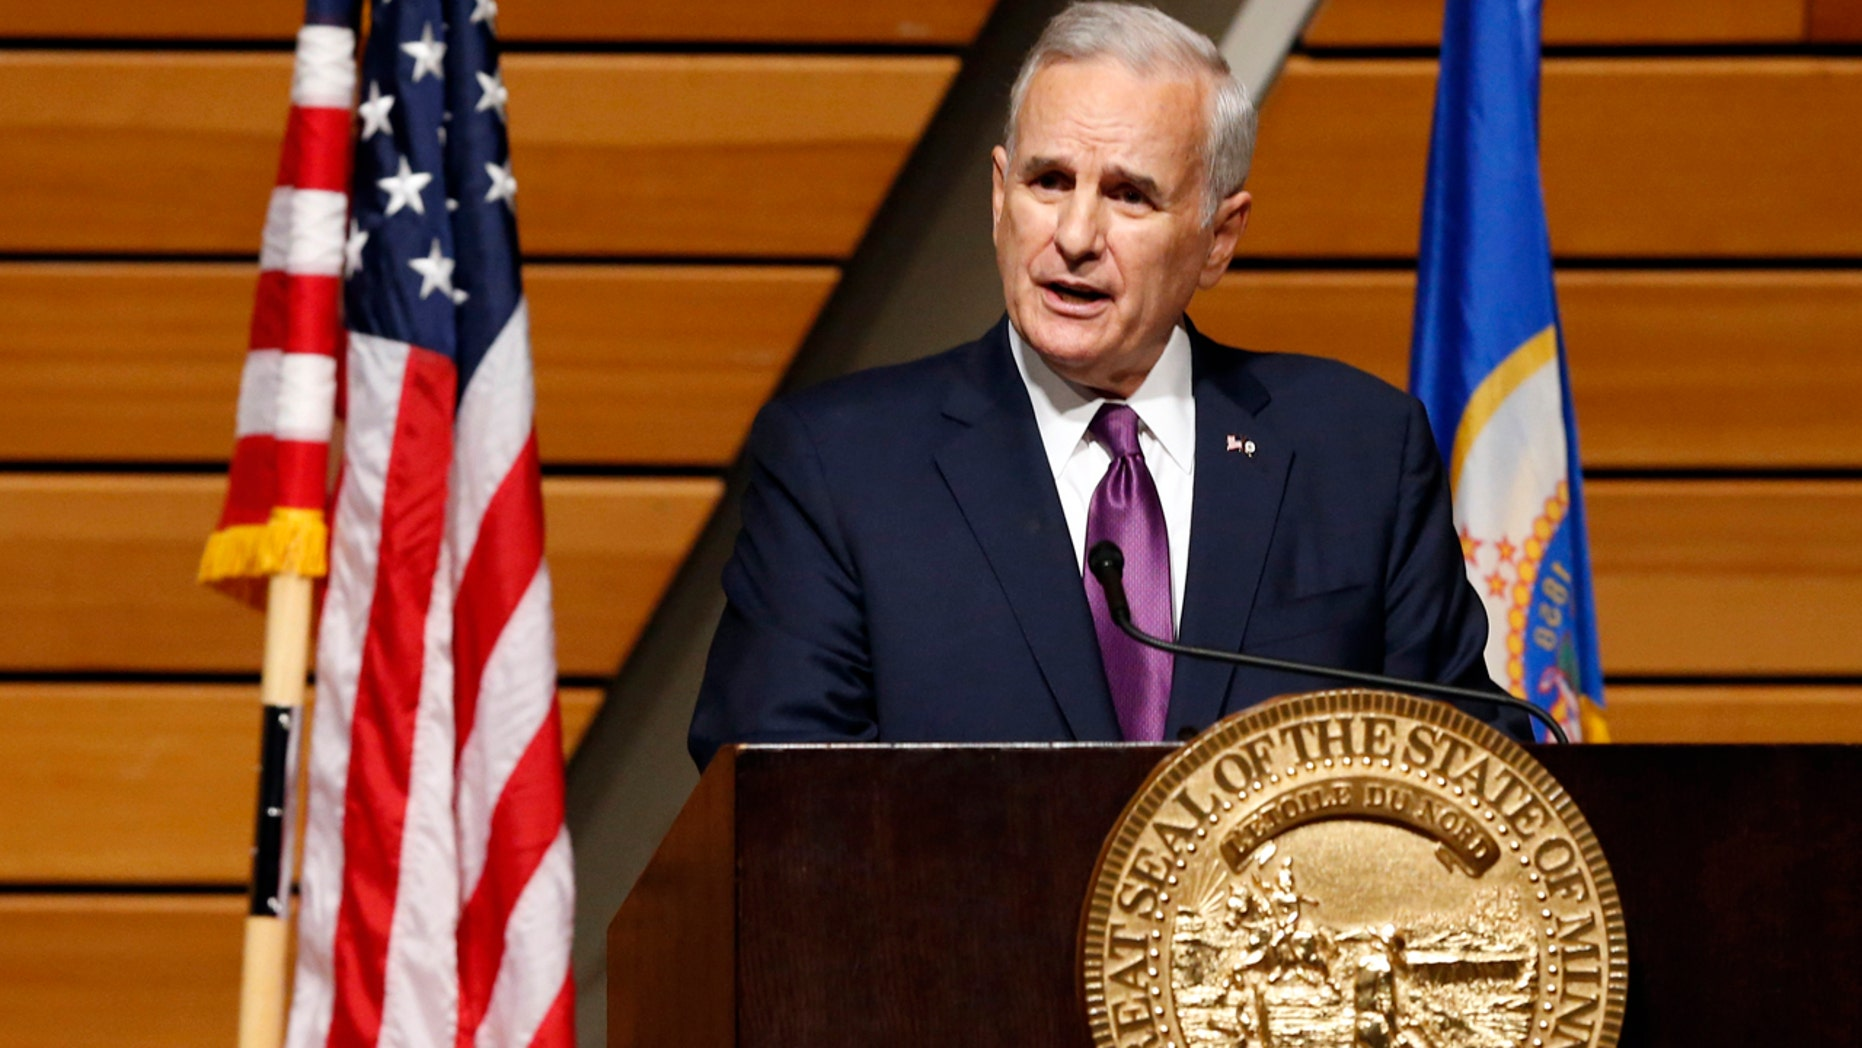 FILE - In this March 9, 2016, file photo, Minnesota Democratic Gov. Mark Dayton delivers his State of the State address at the University of Minnesota in Minneapolis.